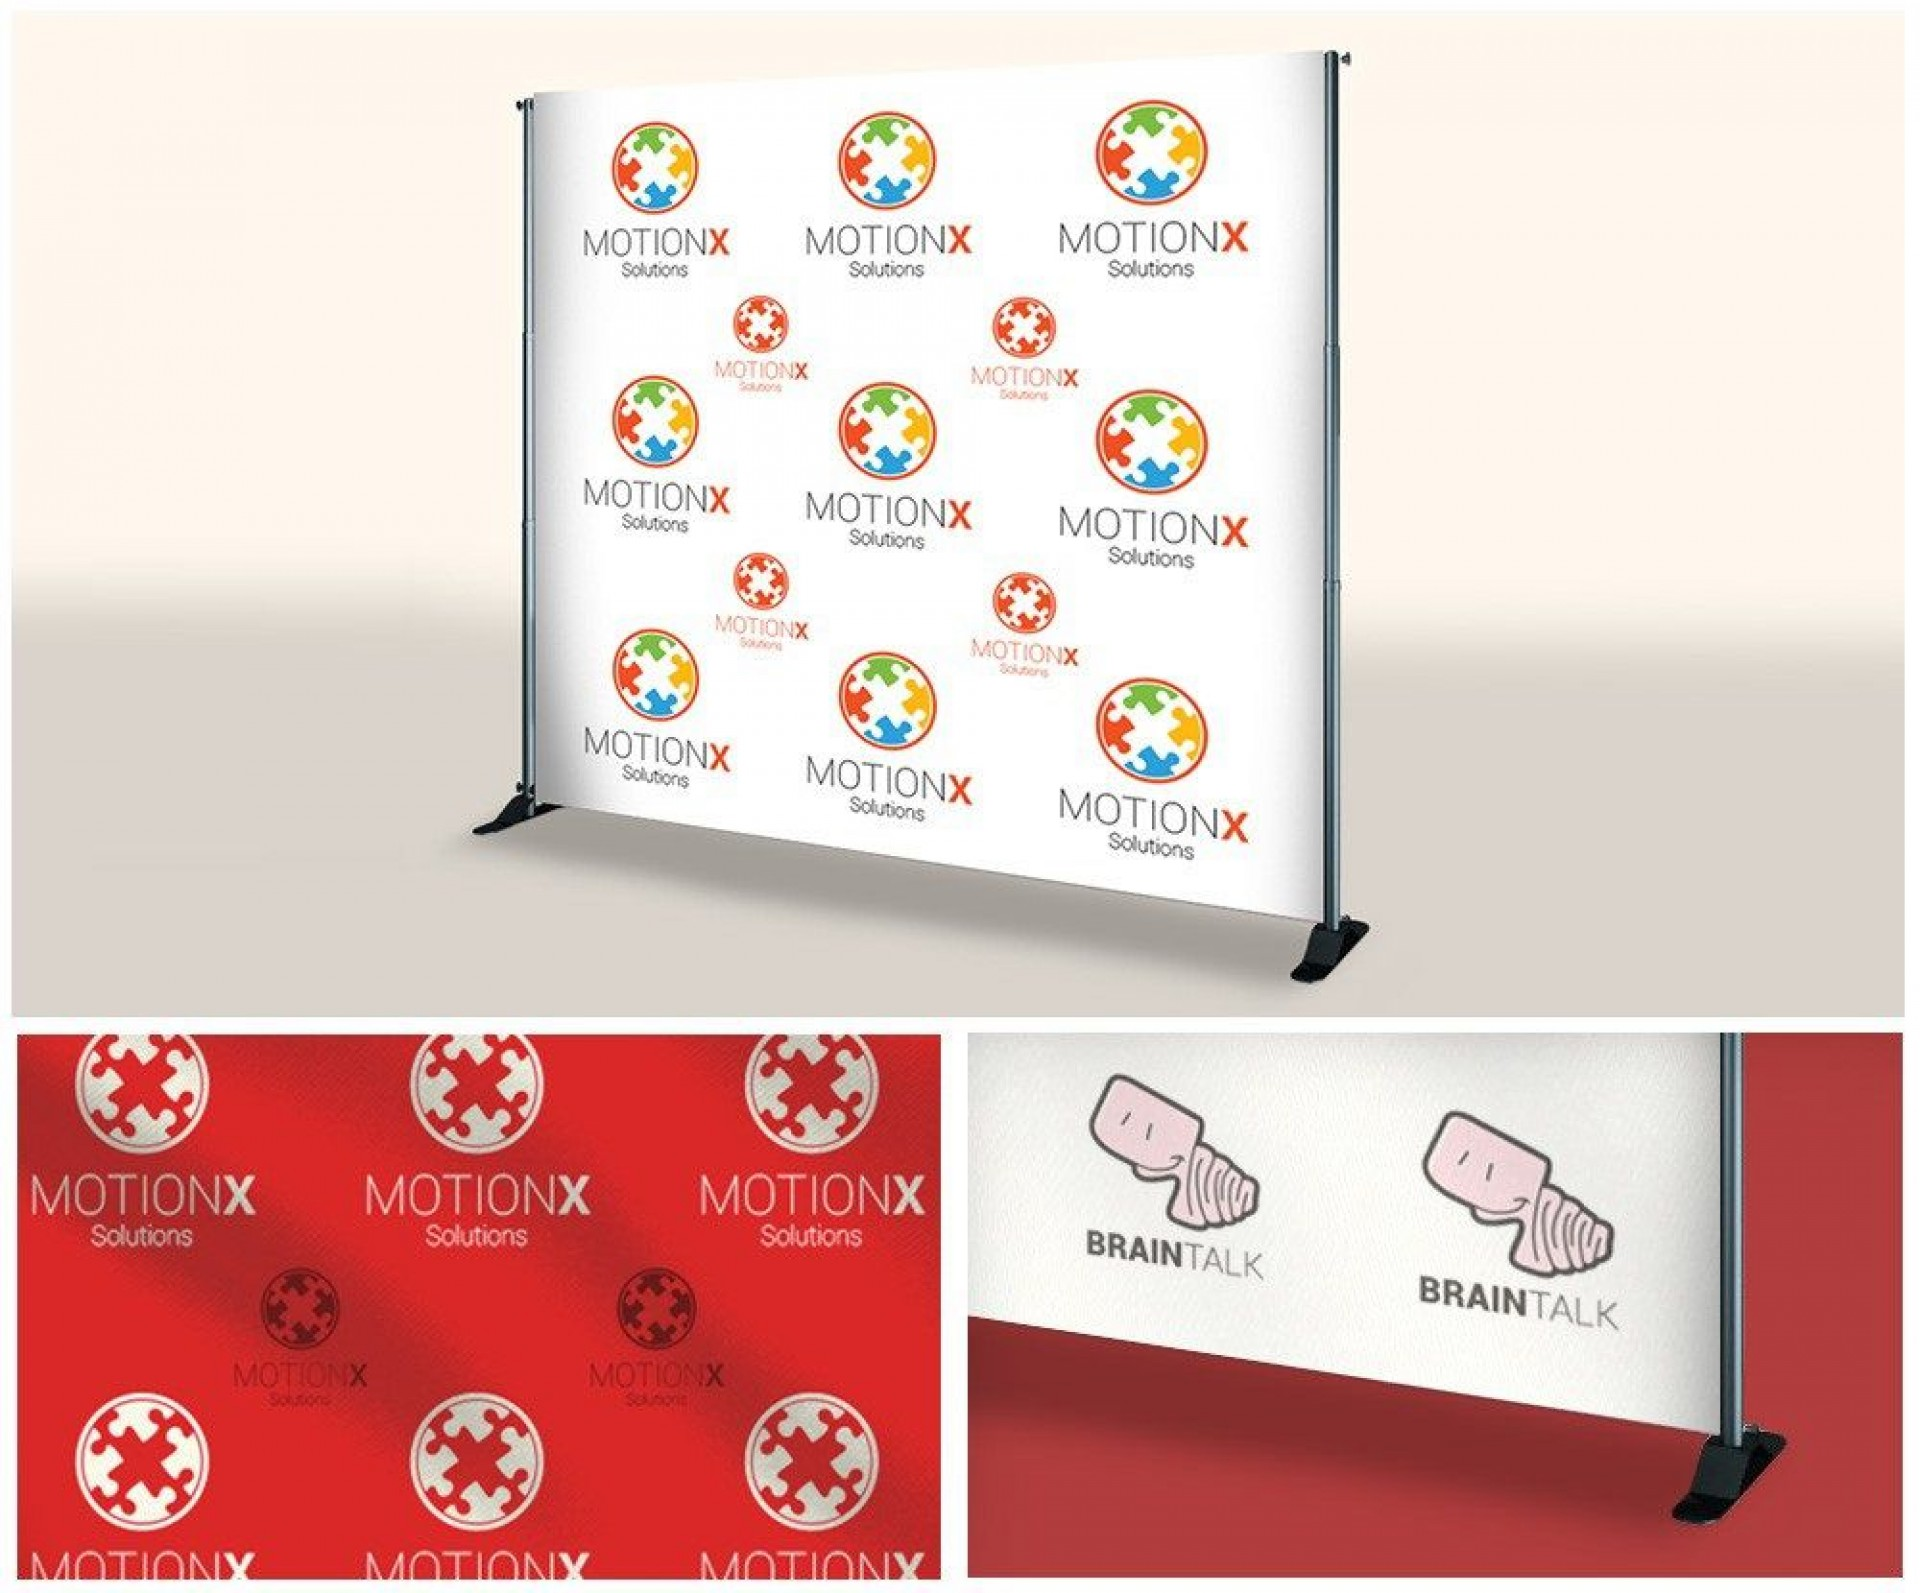 006 Unique Step And Repeat Banner Template High Definition  Psd Photoshop 8x81920